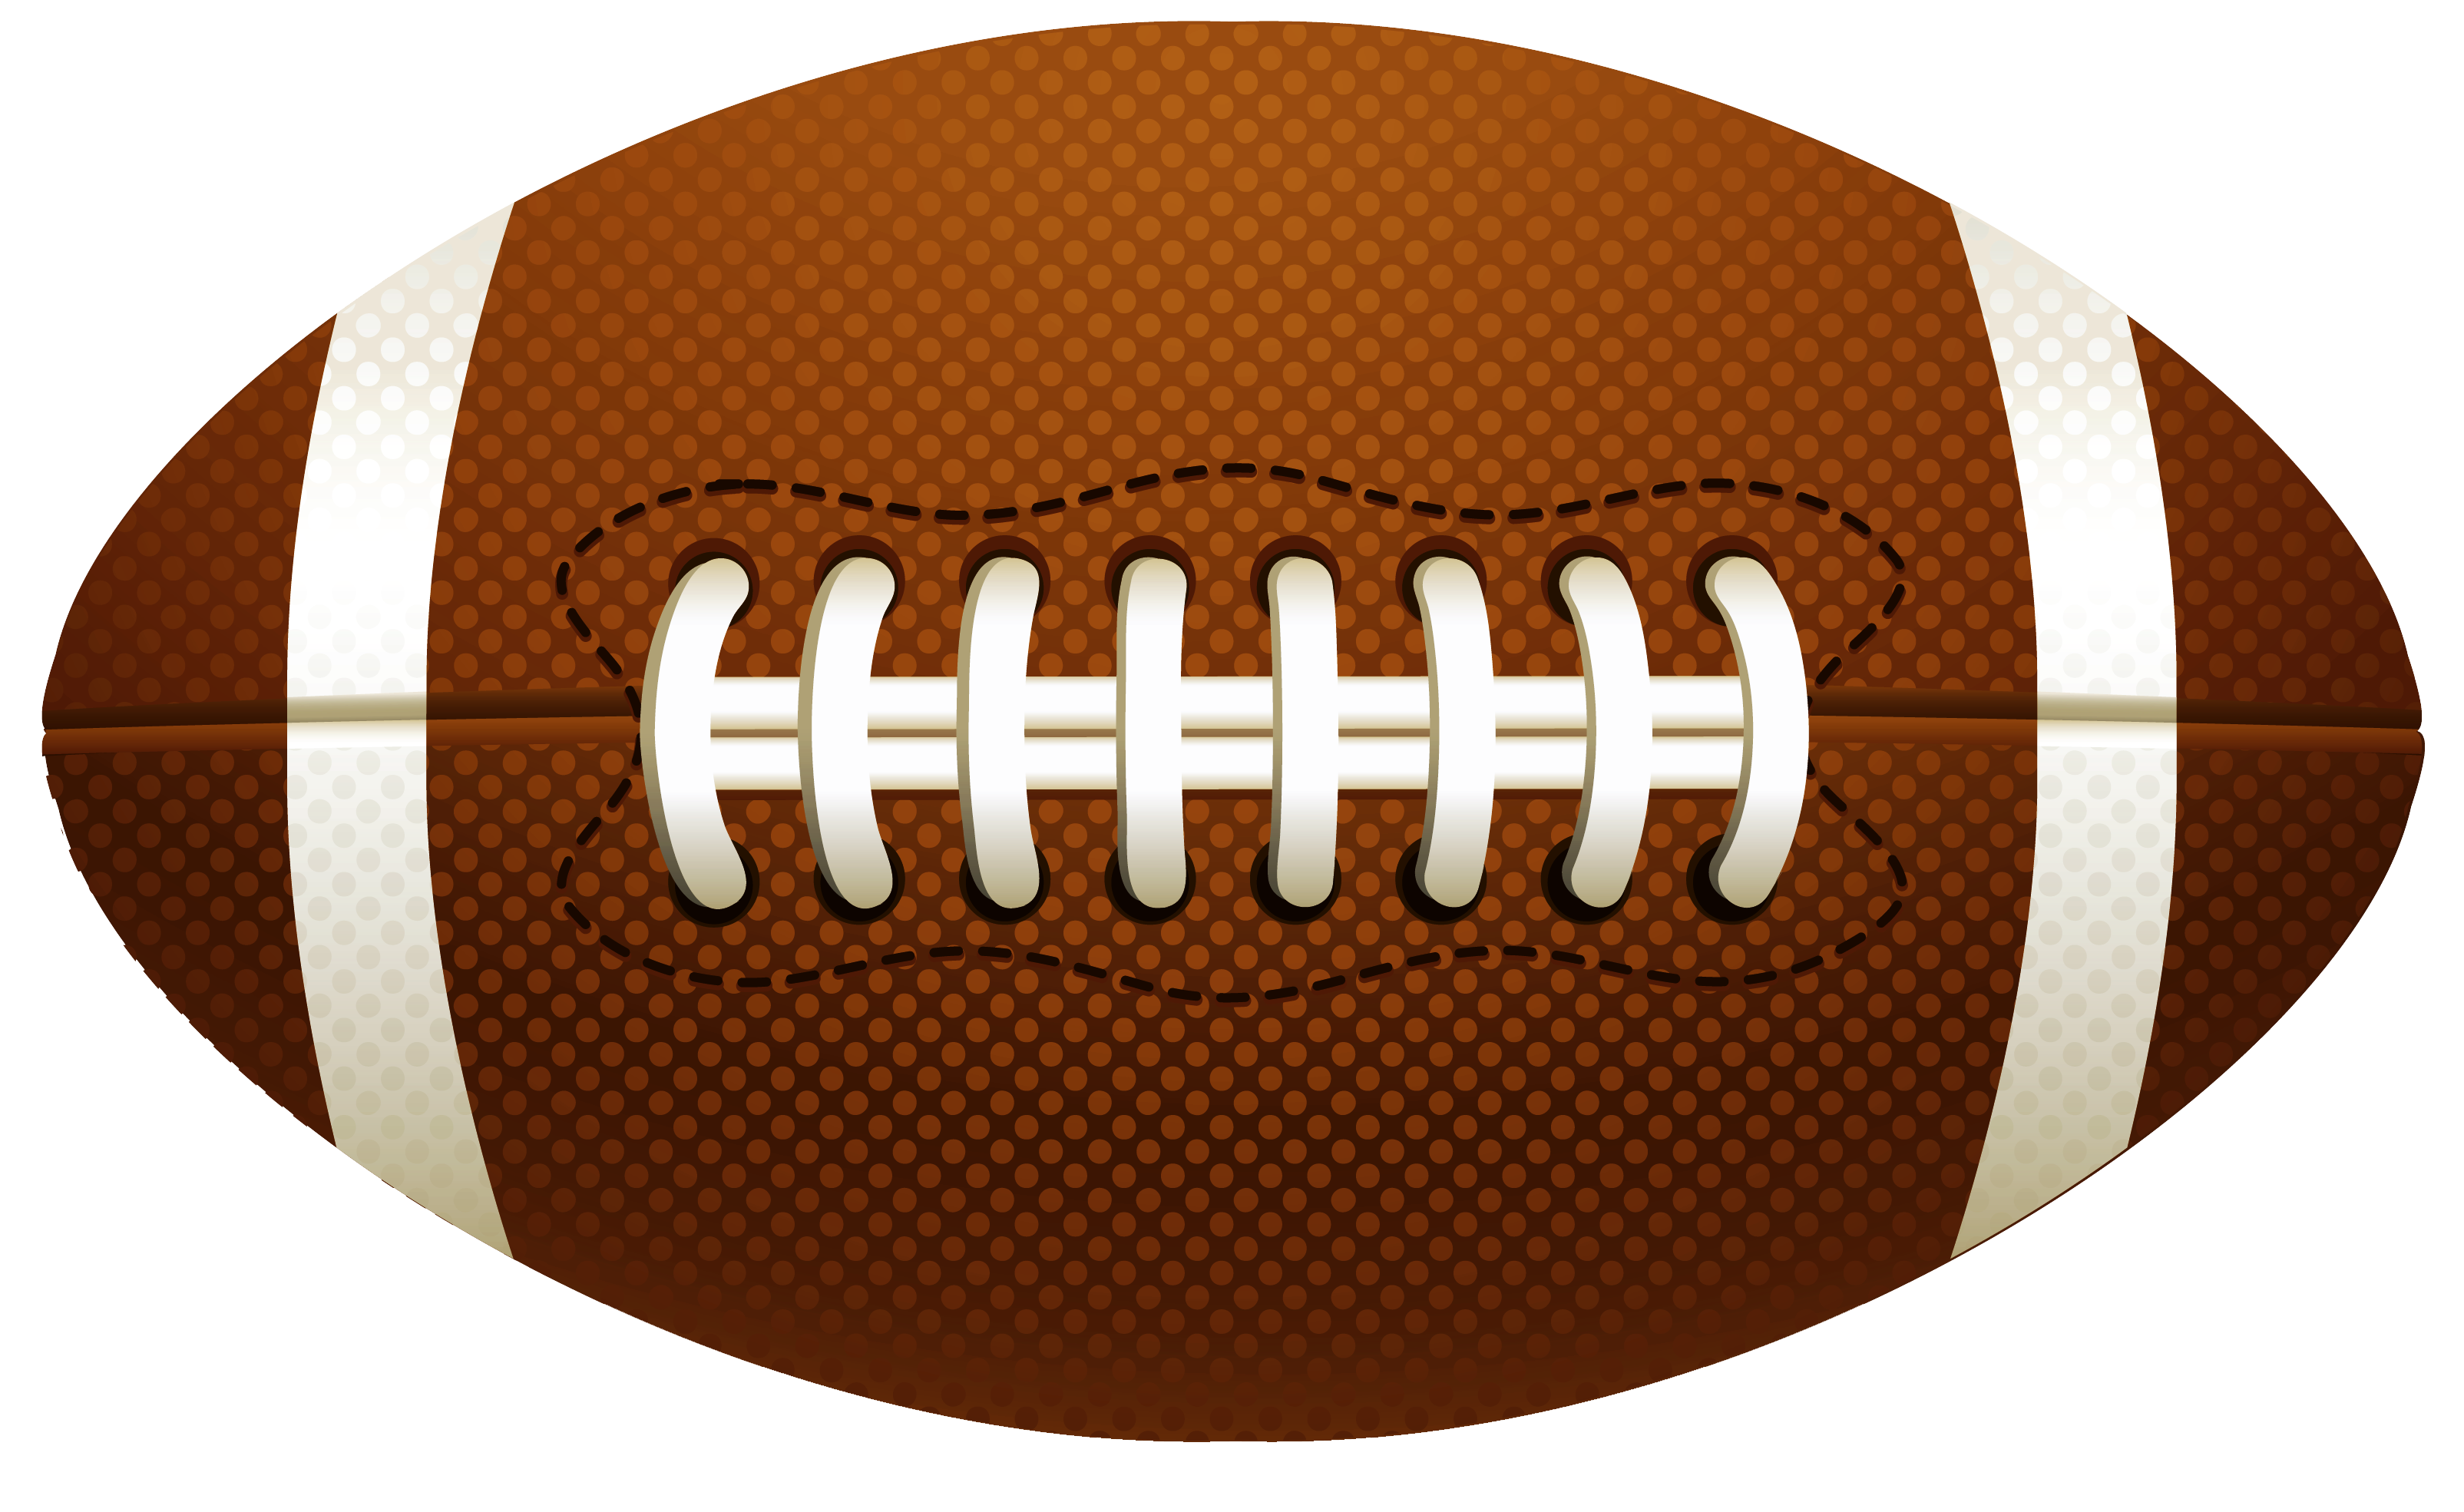 Football homecoming clipart clipart library download American Football Ball PNG Vector Clipart | Interests | Pinterest ... clipart library download